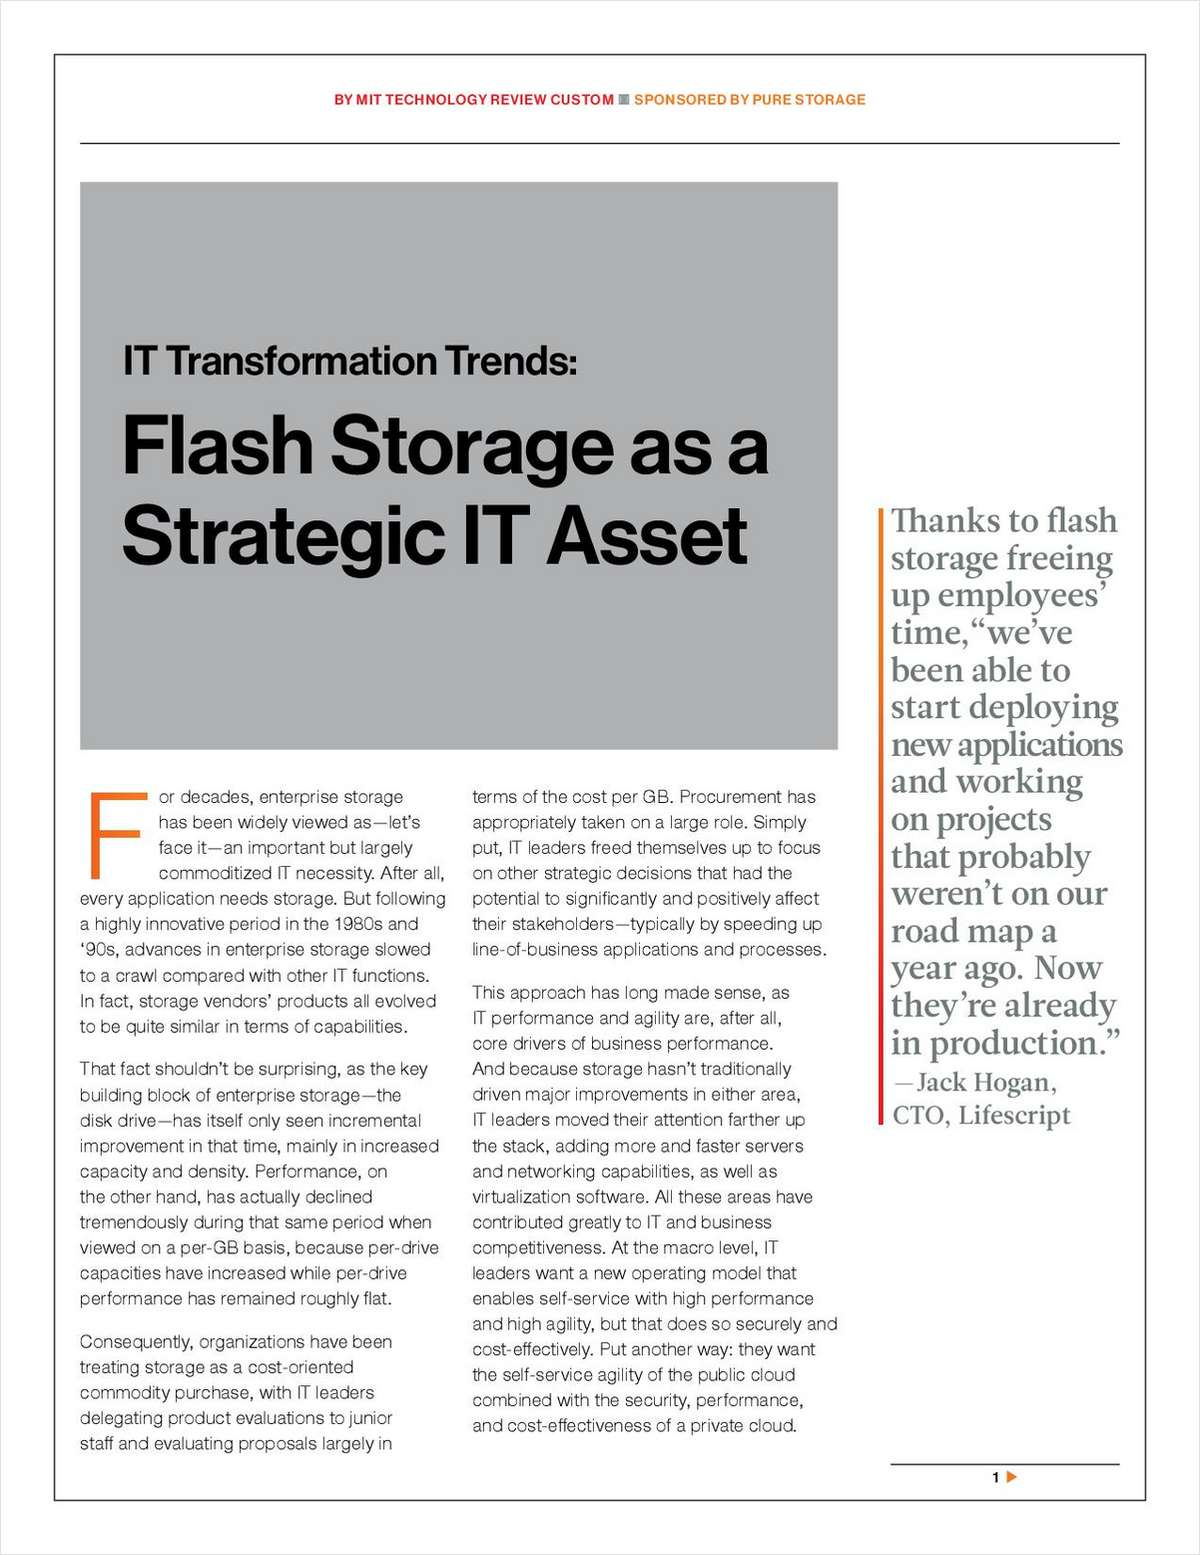 MIT Technology Review: Flash Storage As a Strategic IT Asset